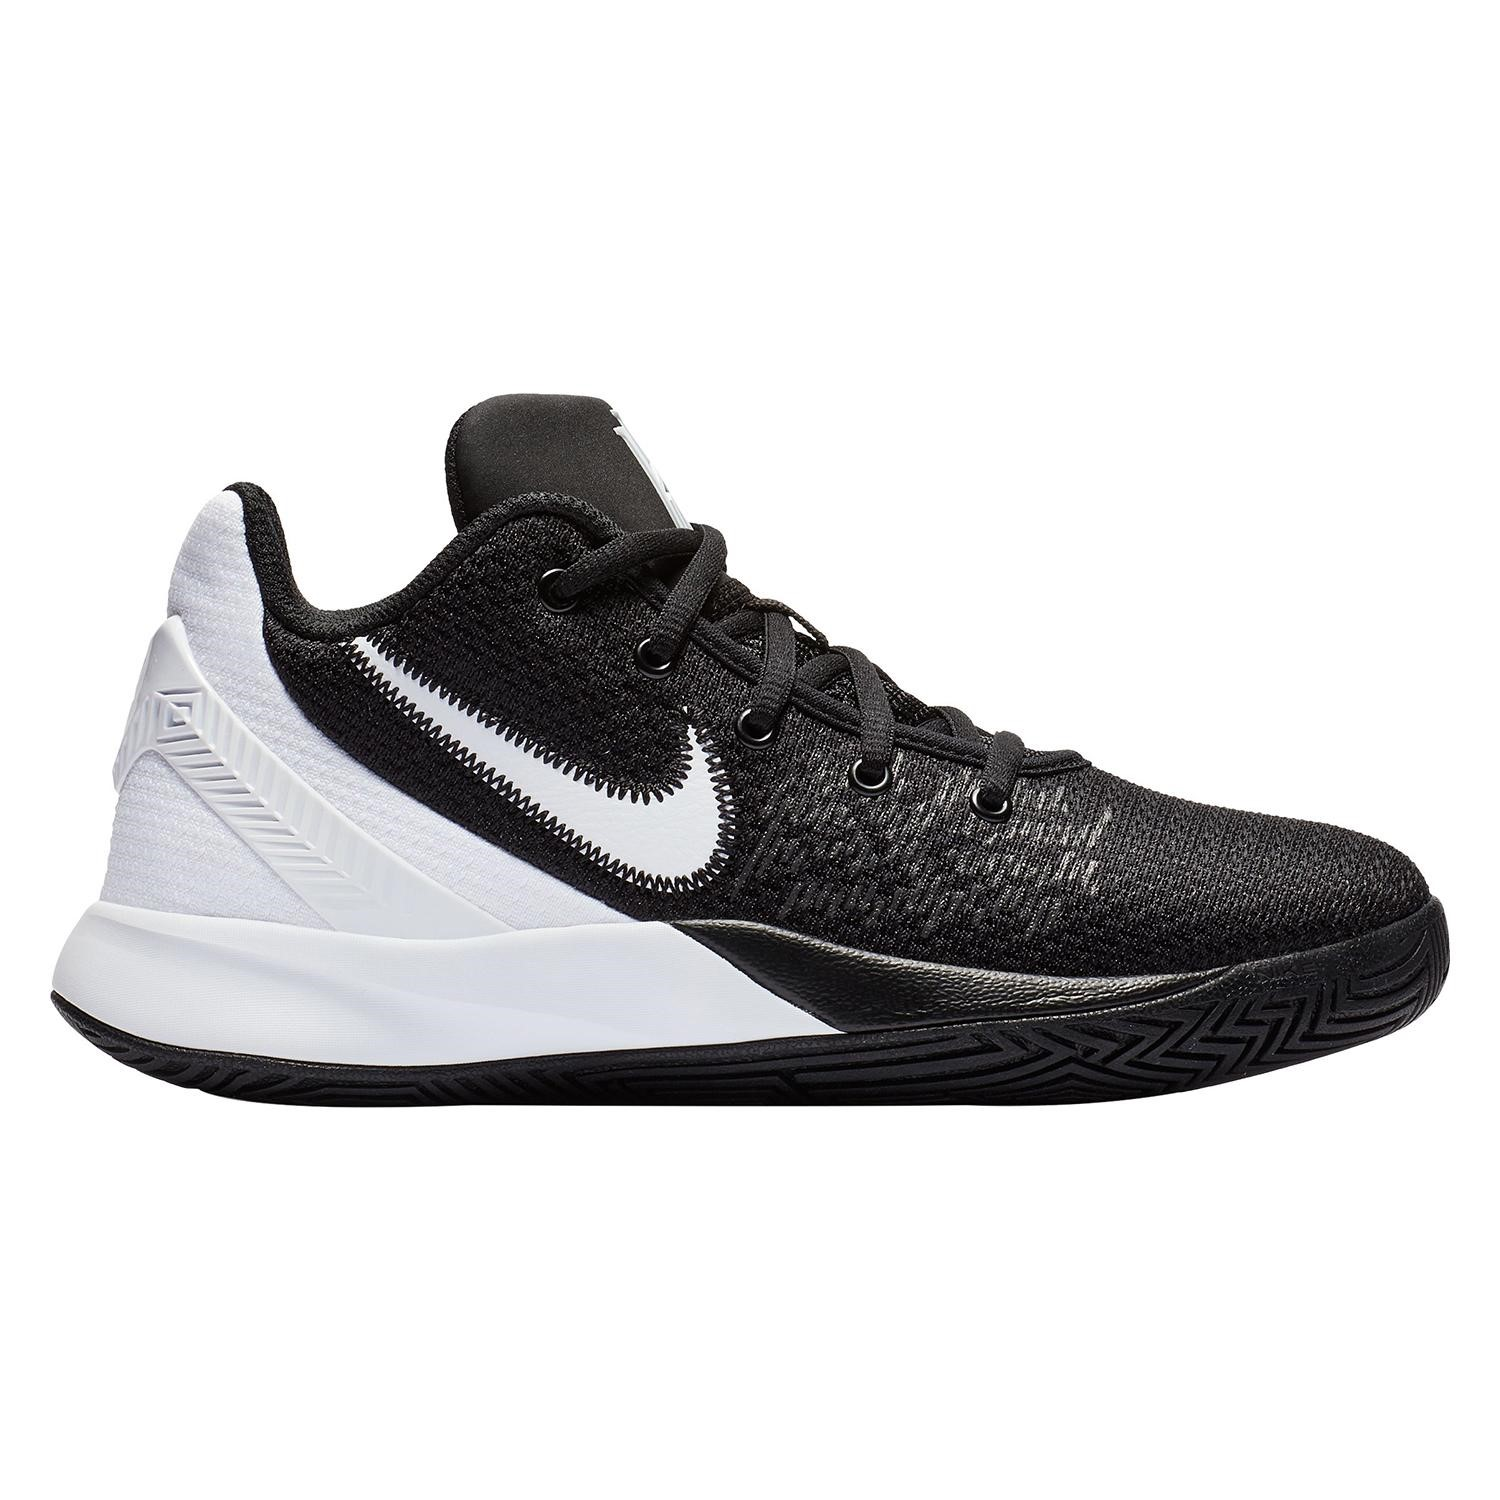 d2c97e95ae3 Nike Kyrie Flytrap II GS - Kids Basketball Shoes - Black White ...